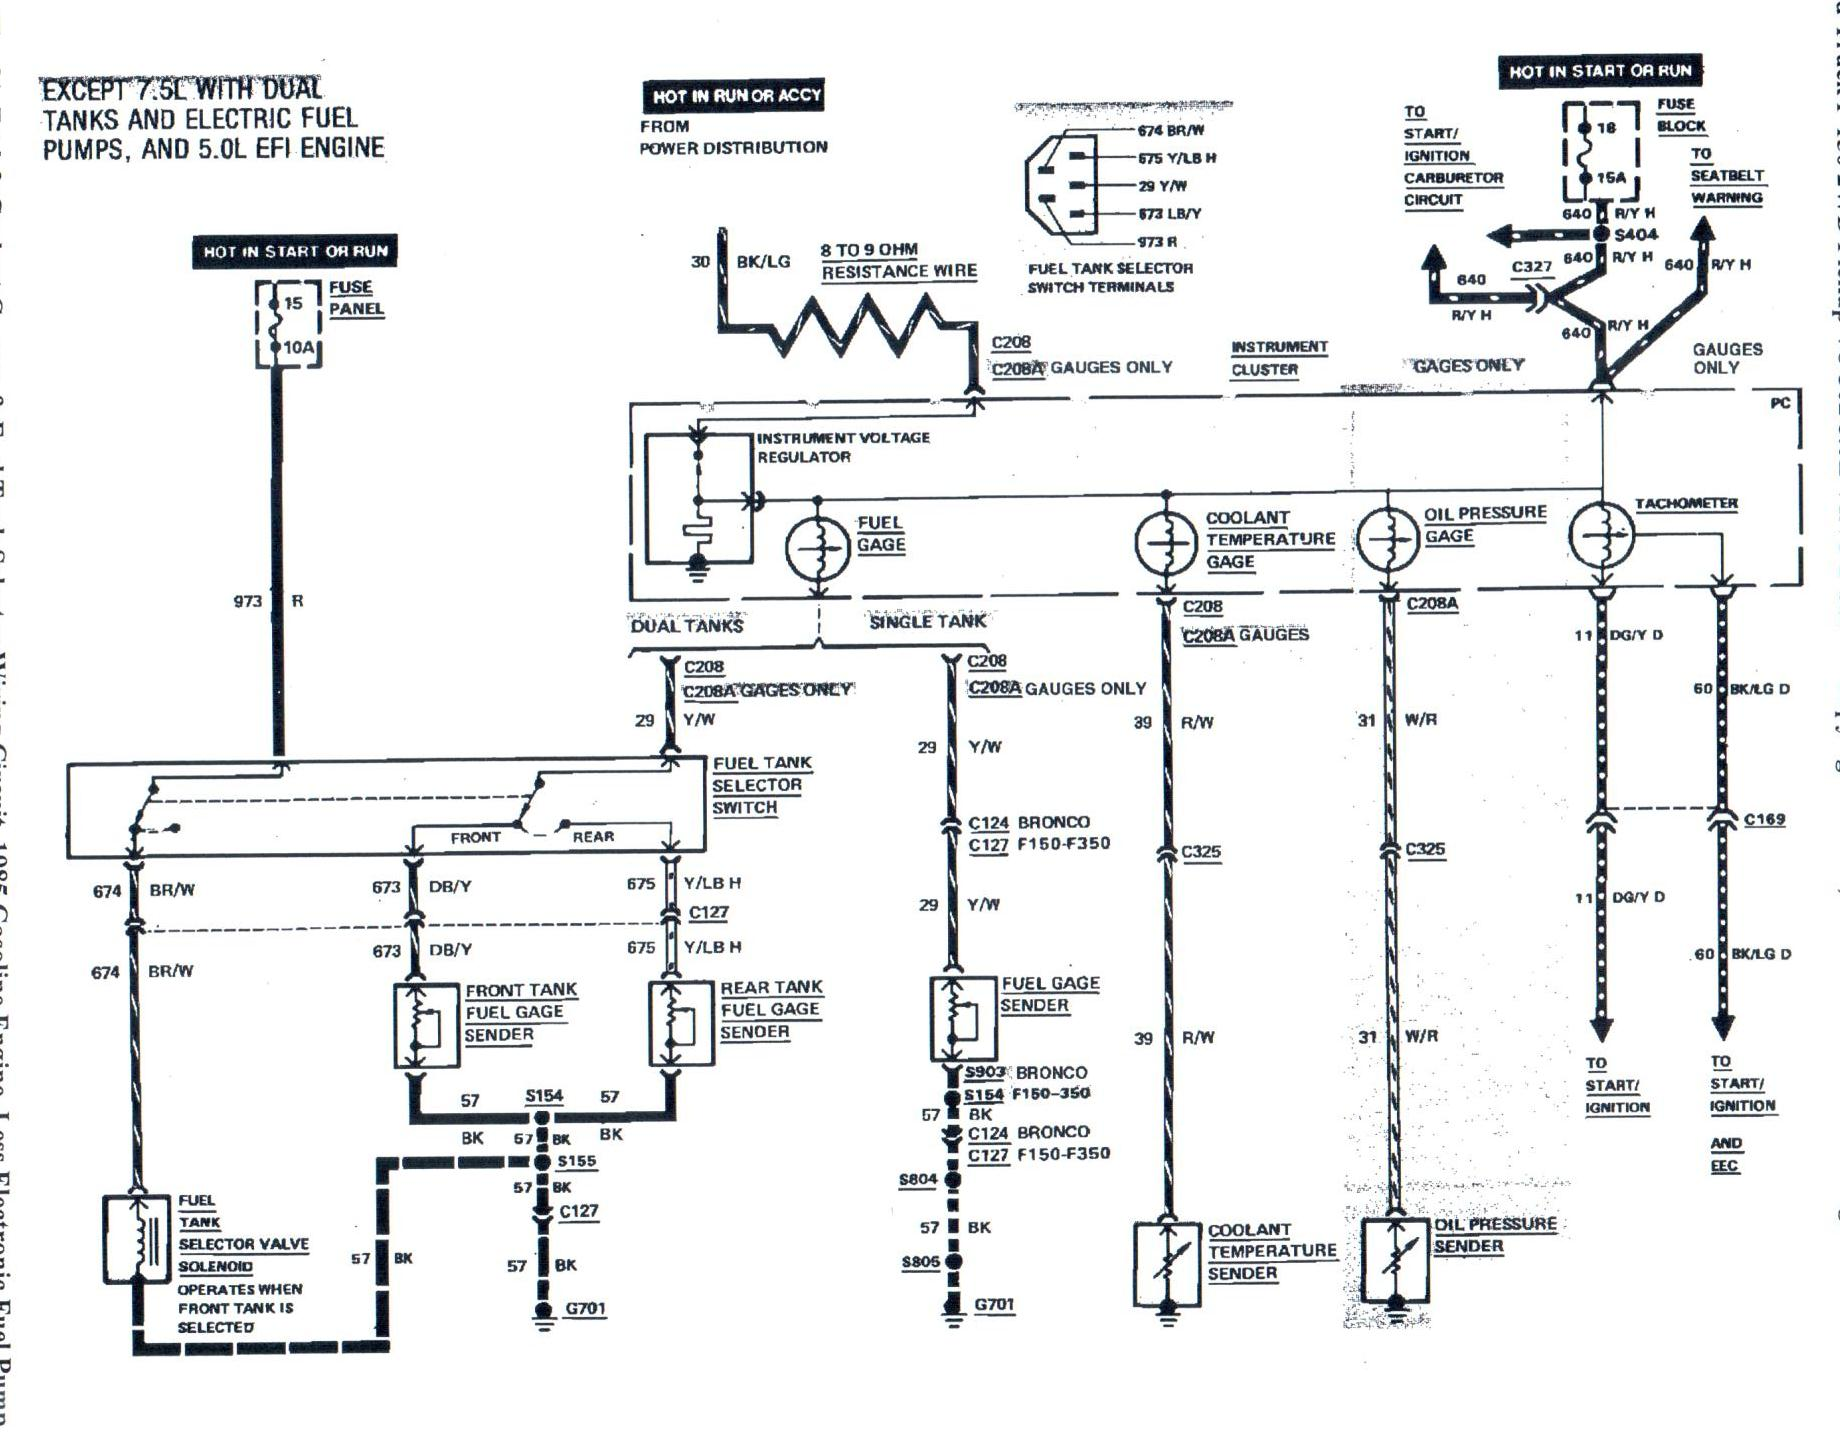 1985 Ford F150 Injector Wiring Diagram : 38 Wiring Diagram